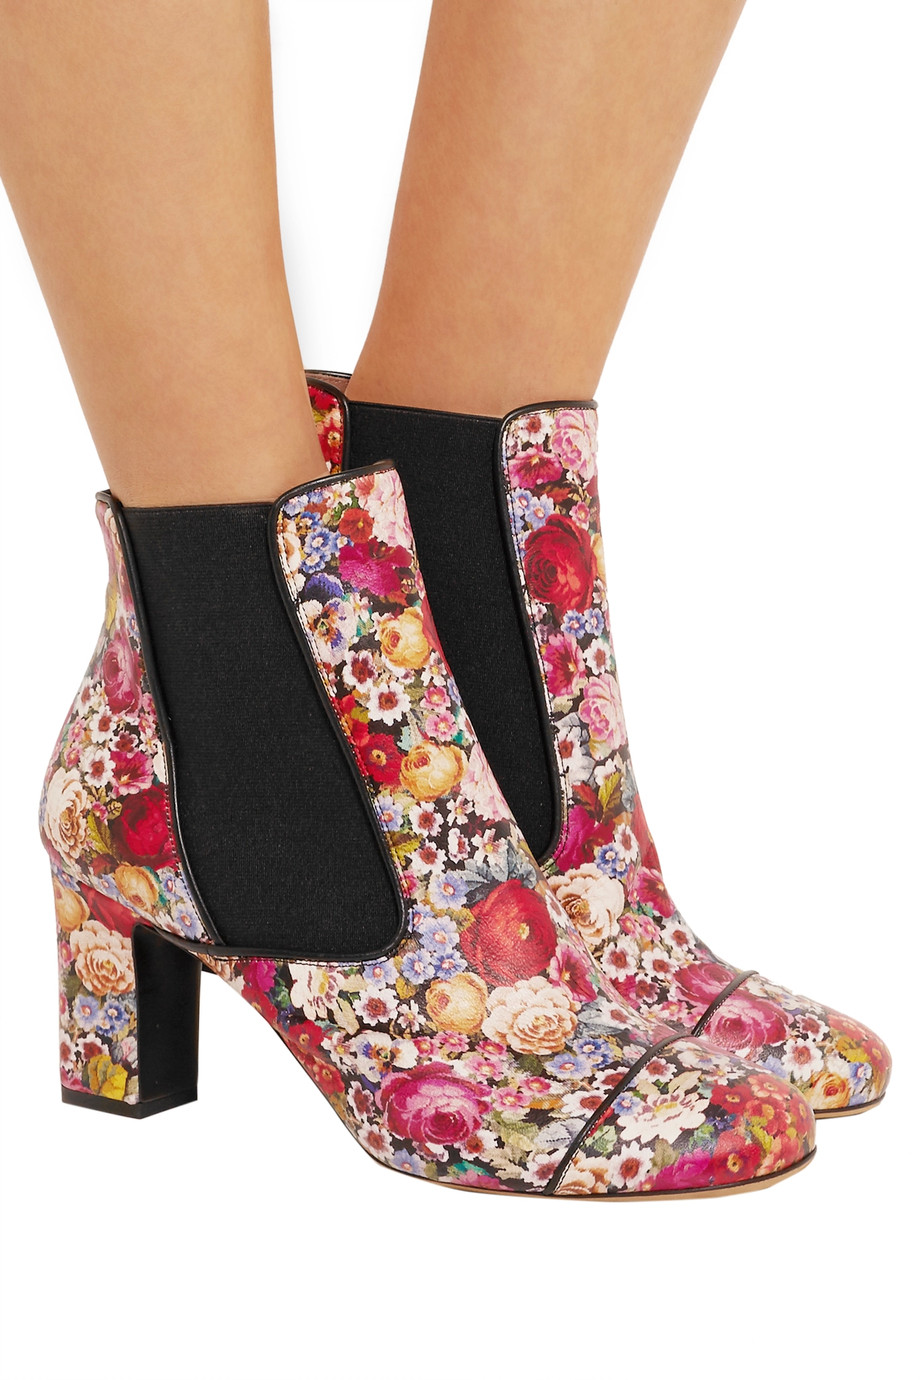 Ankle boots decorated Tabitha Simmons buy Ankle boots decorated Tabitha Simmons internet shop